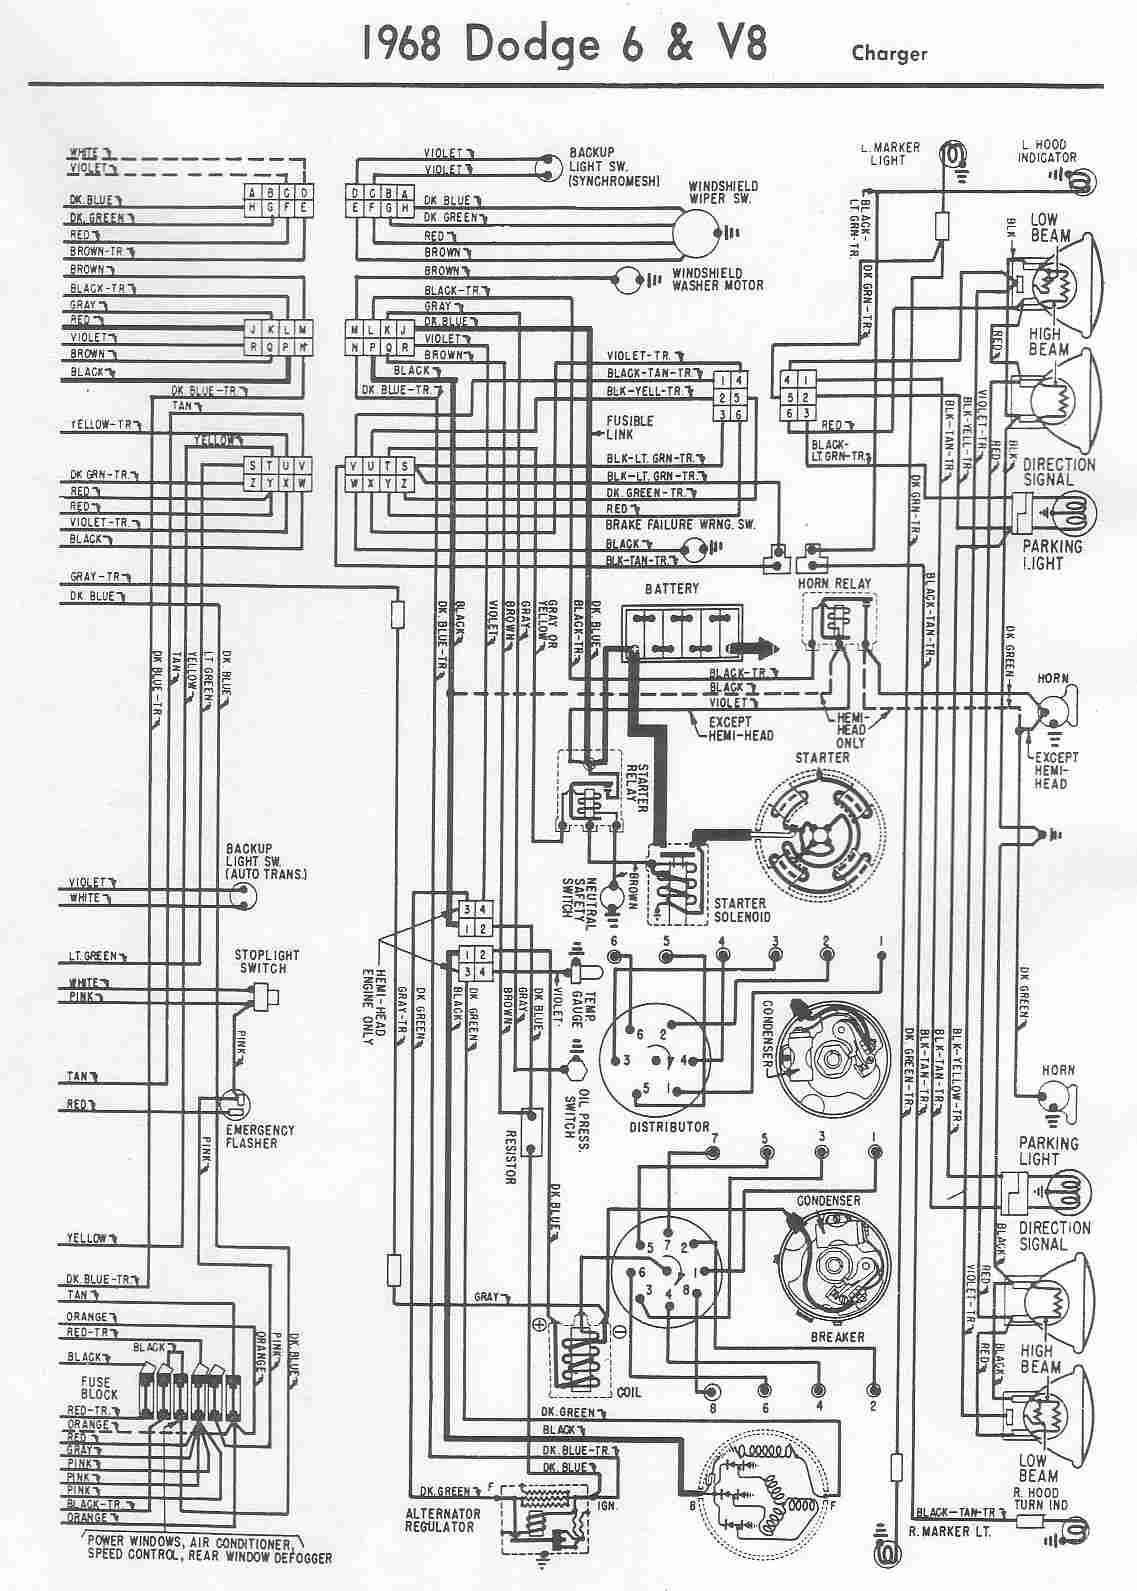 charger electrical wiring diagram of 1968 dodge 6 and v8?t=1508404771 dodge car manuals, wiring diagrams pdf & fault codes 1968 dodge coronet wiring diagram at readyjetset.co